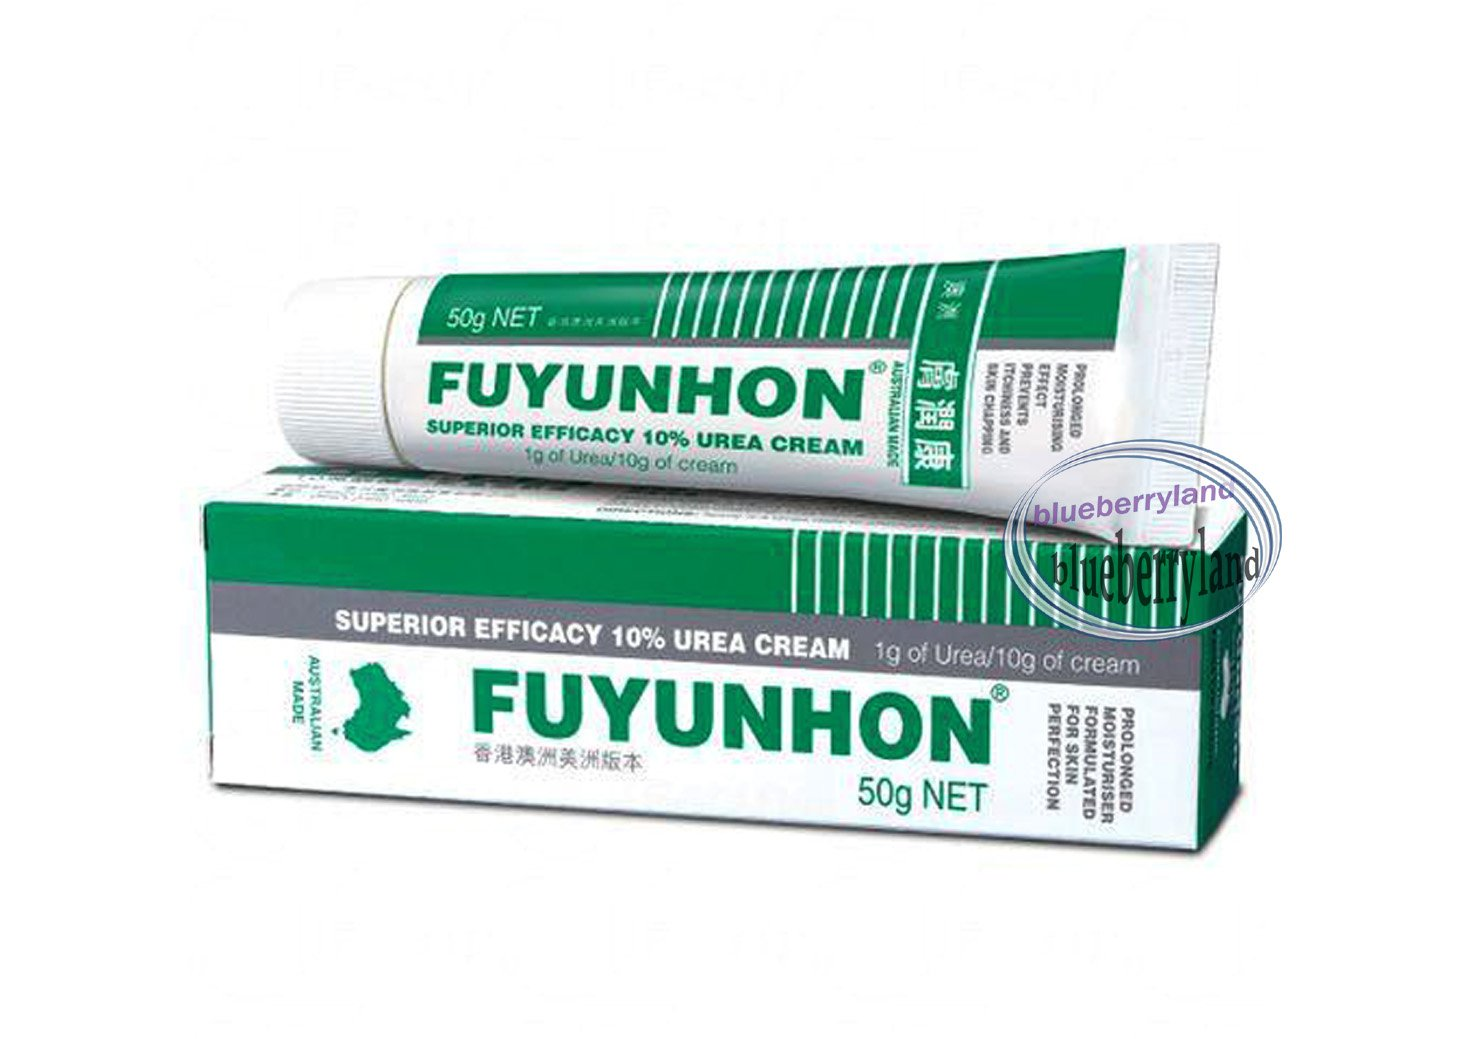 Fuyunhon Super Efficacy 10% Urea Cream 50g for skin perfection dermatophyte and fungi